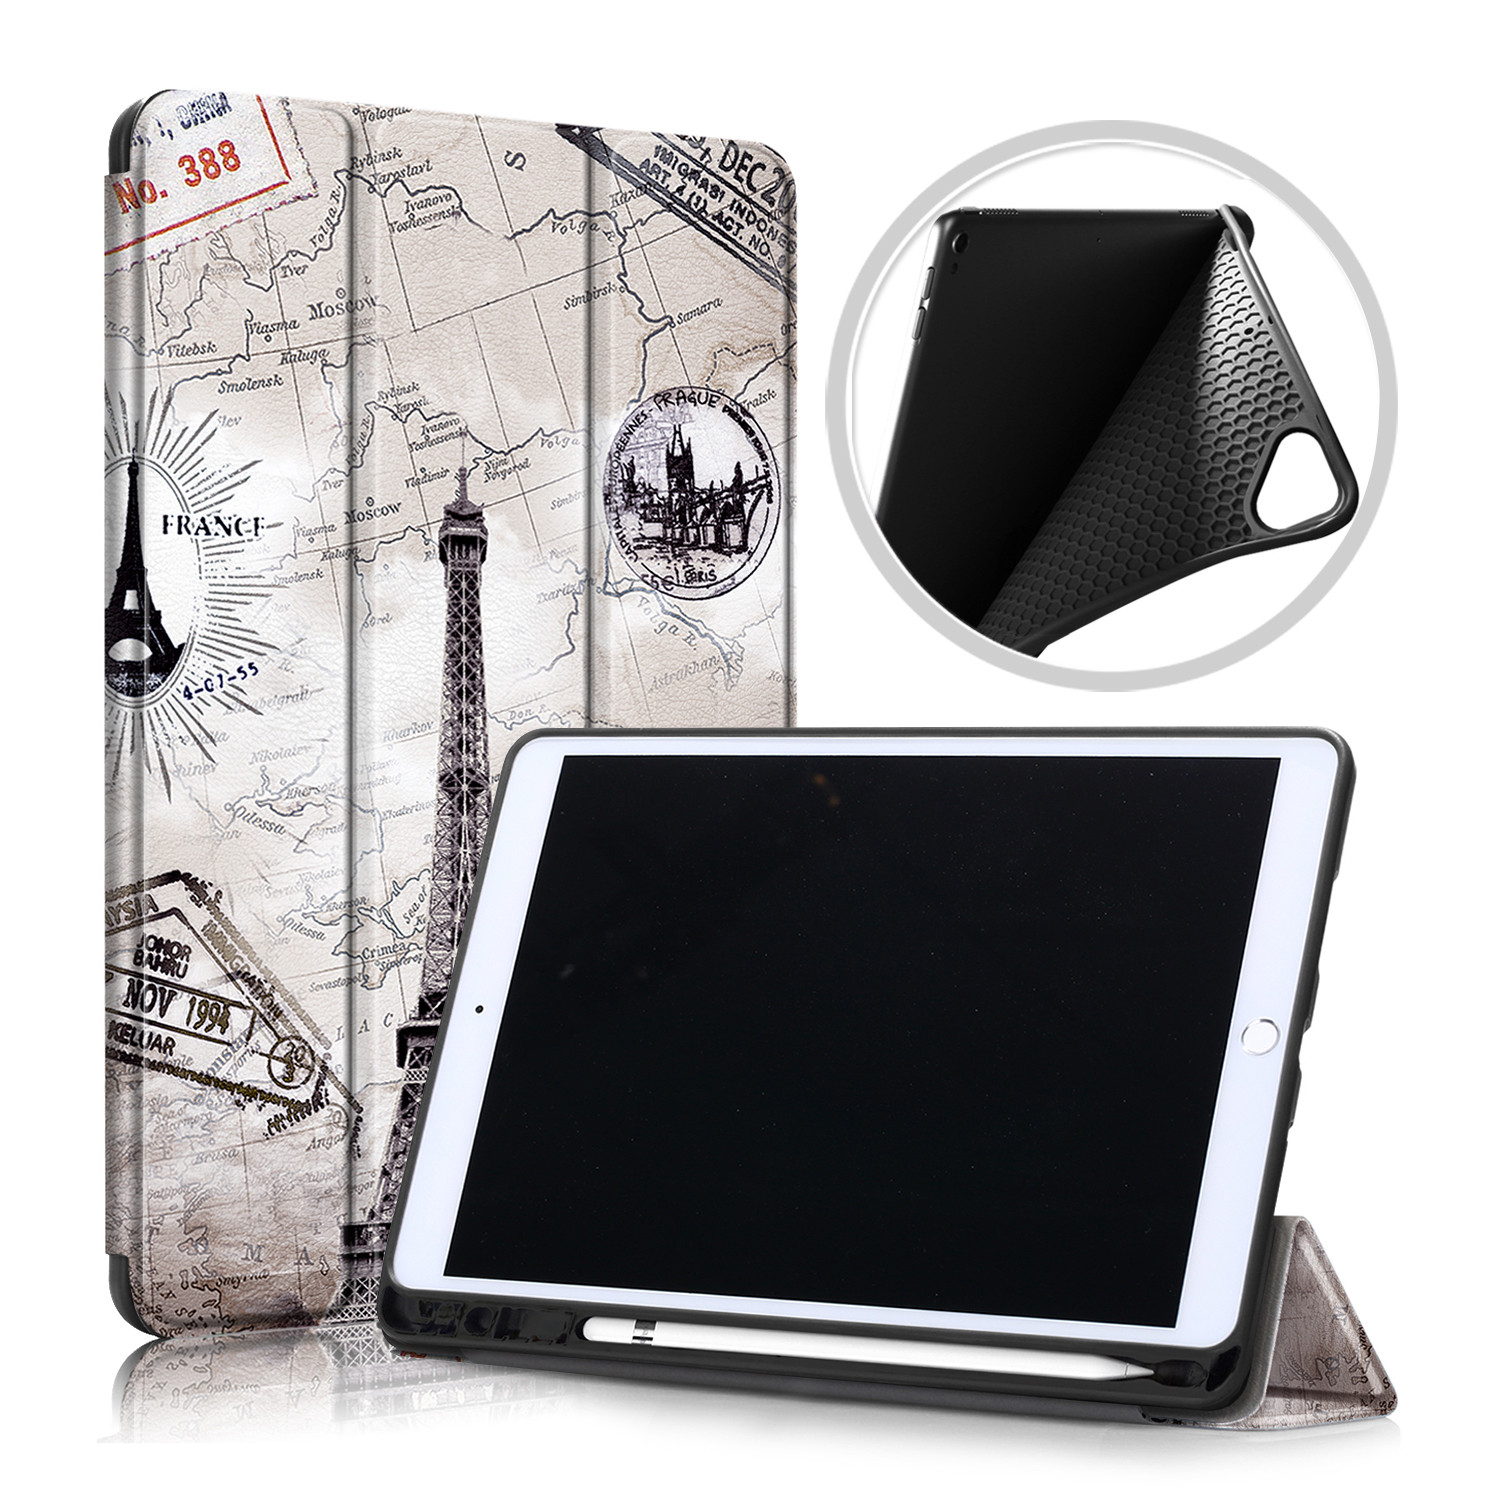 Holder 2020 Pencil Magnetic with Inch Folding Case Funda Tablet Stand Smart 10.2 For IPad